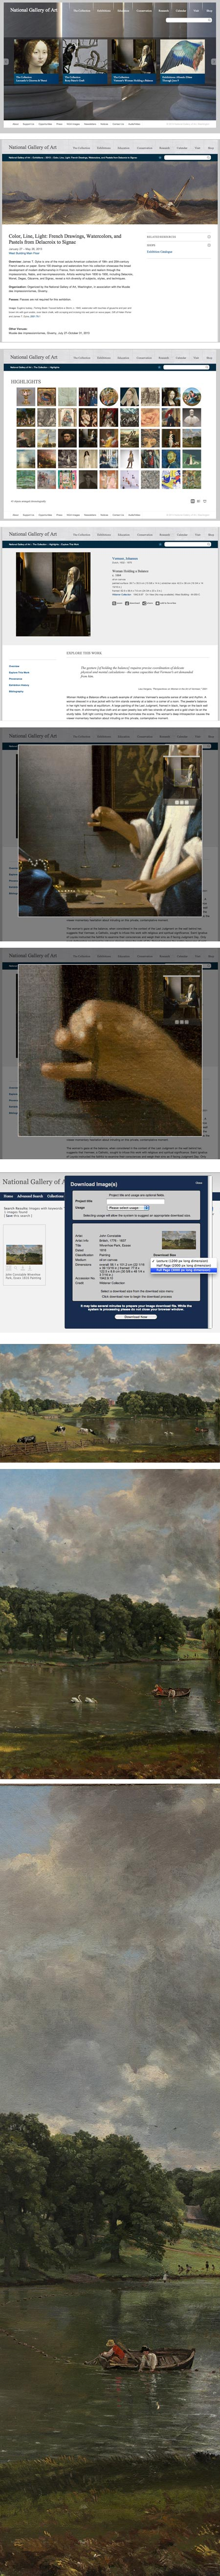 New website for National Gallery of Art